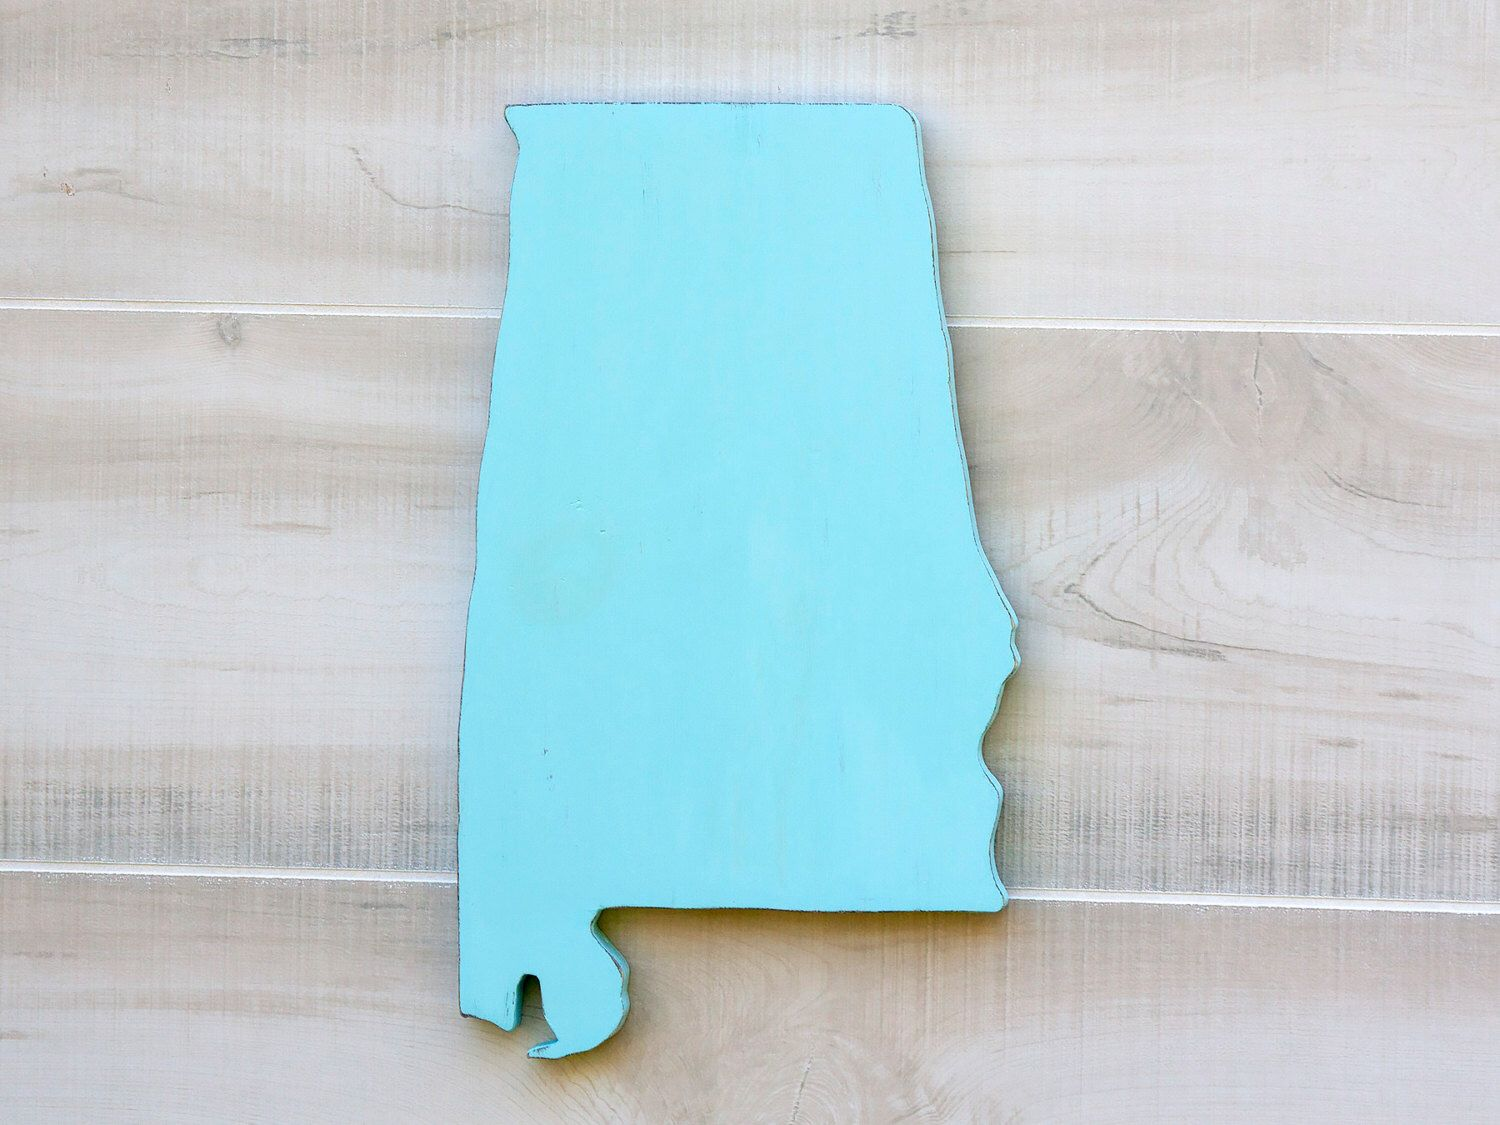 Alabama Home State Wood Sign Cutout Silhouette Wall Art Personalized With Heart Or Star Housewarming Anniversary Wedding Guestbook Personalized Wall Art Cottage Chic Decor Silhouette Wall Art